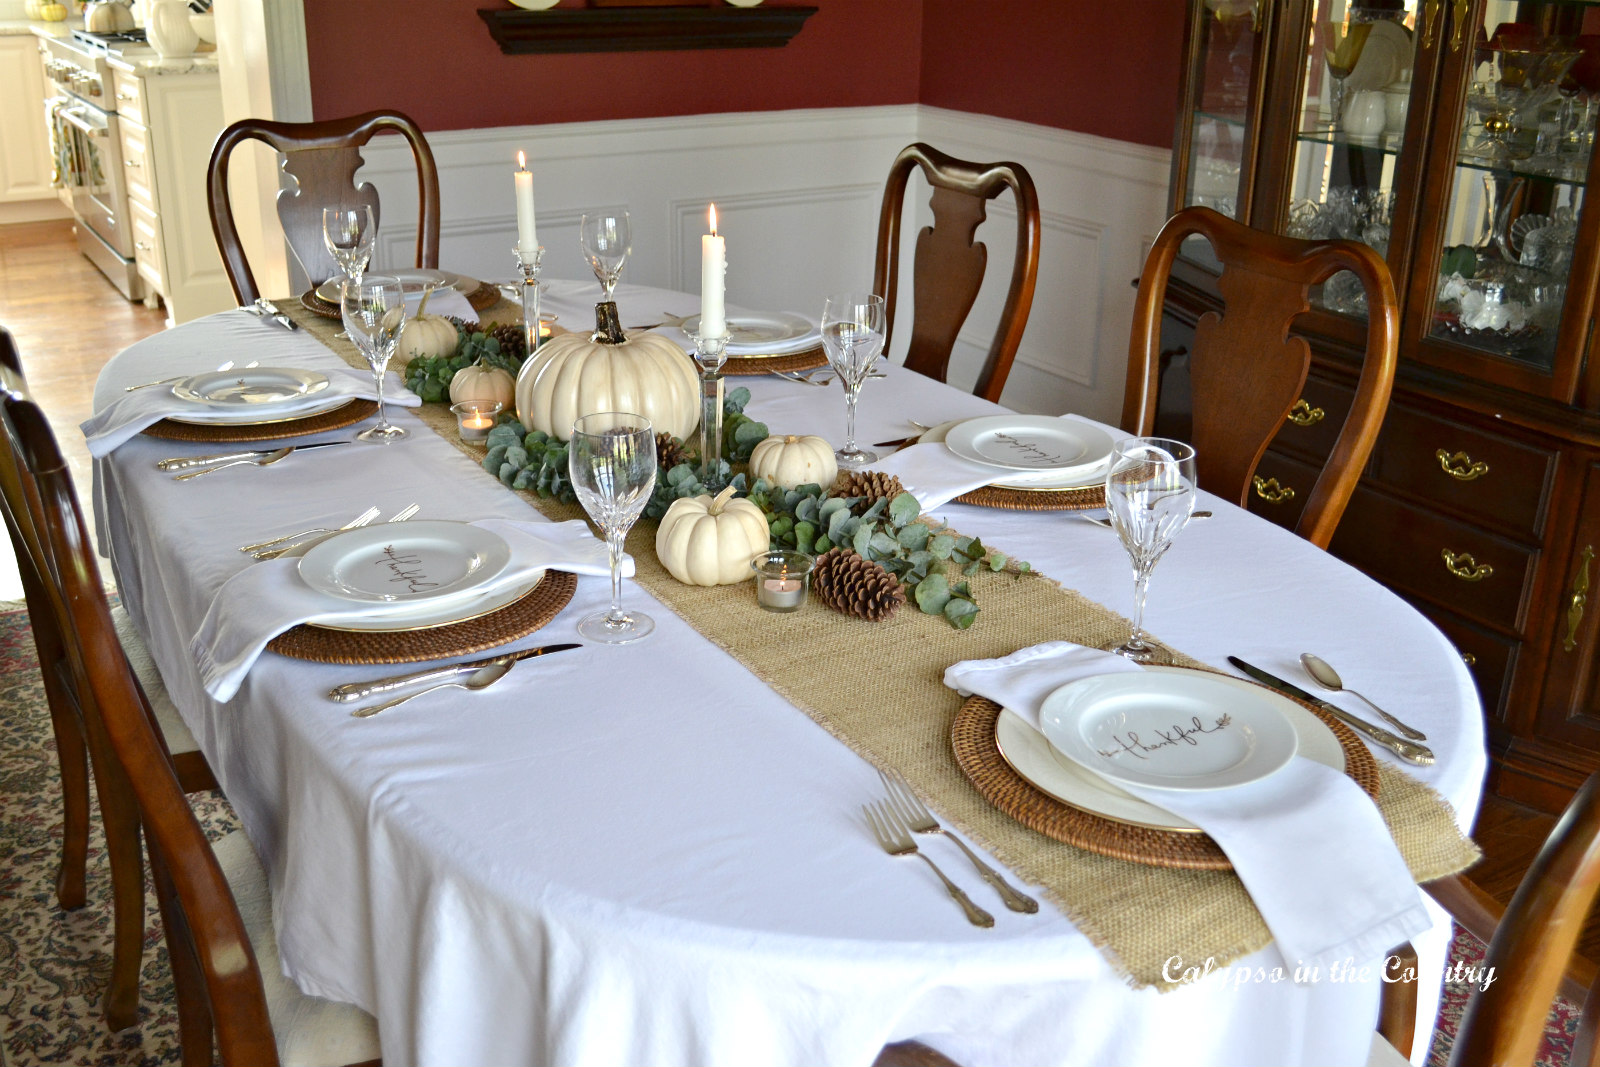 Formal Thanksgiving Table Setting in the Dining Room